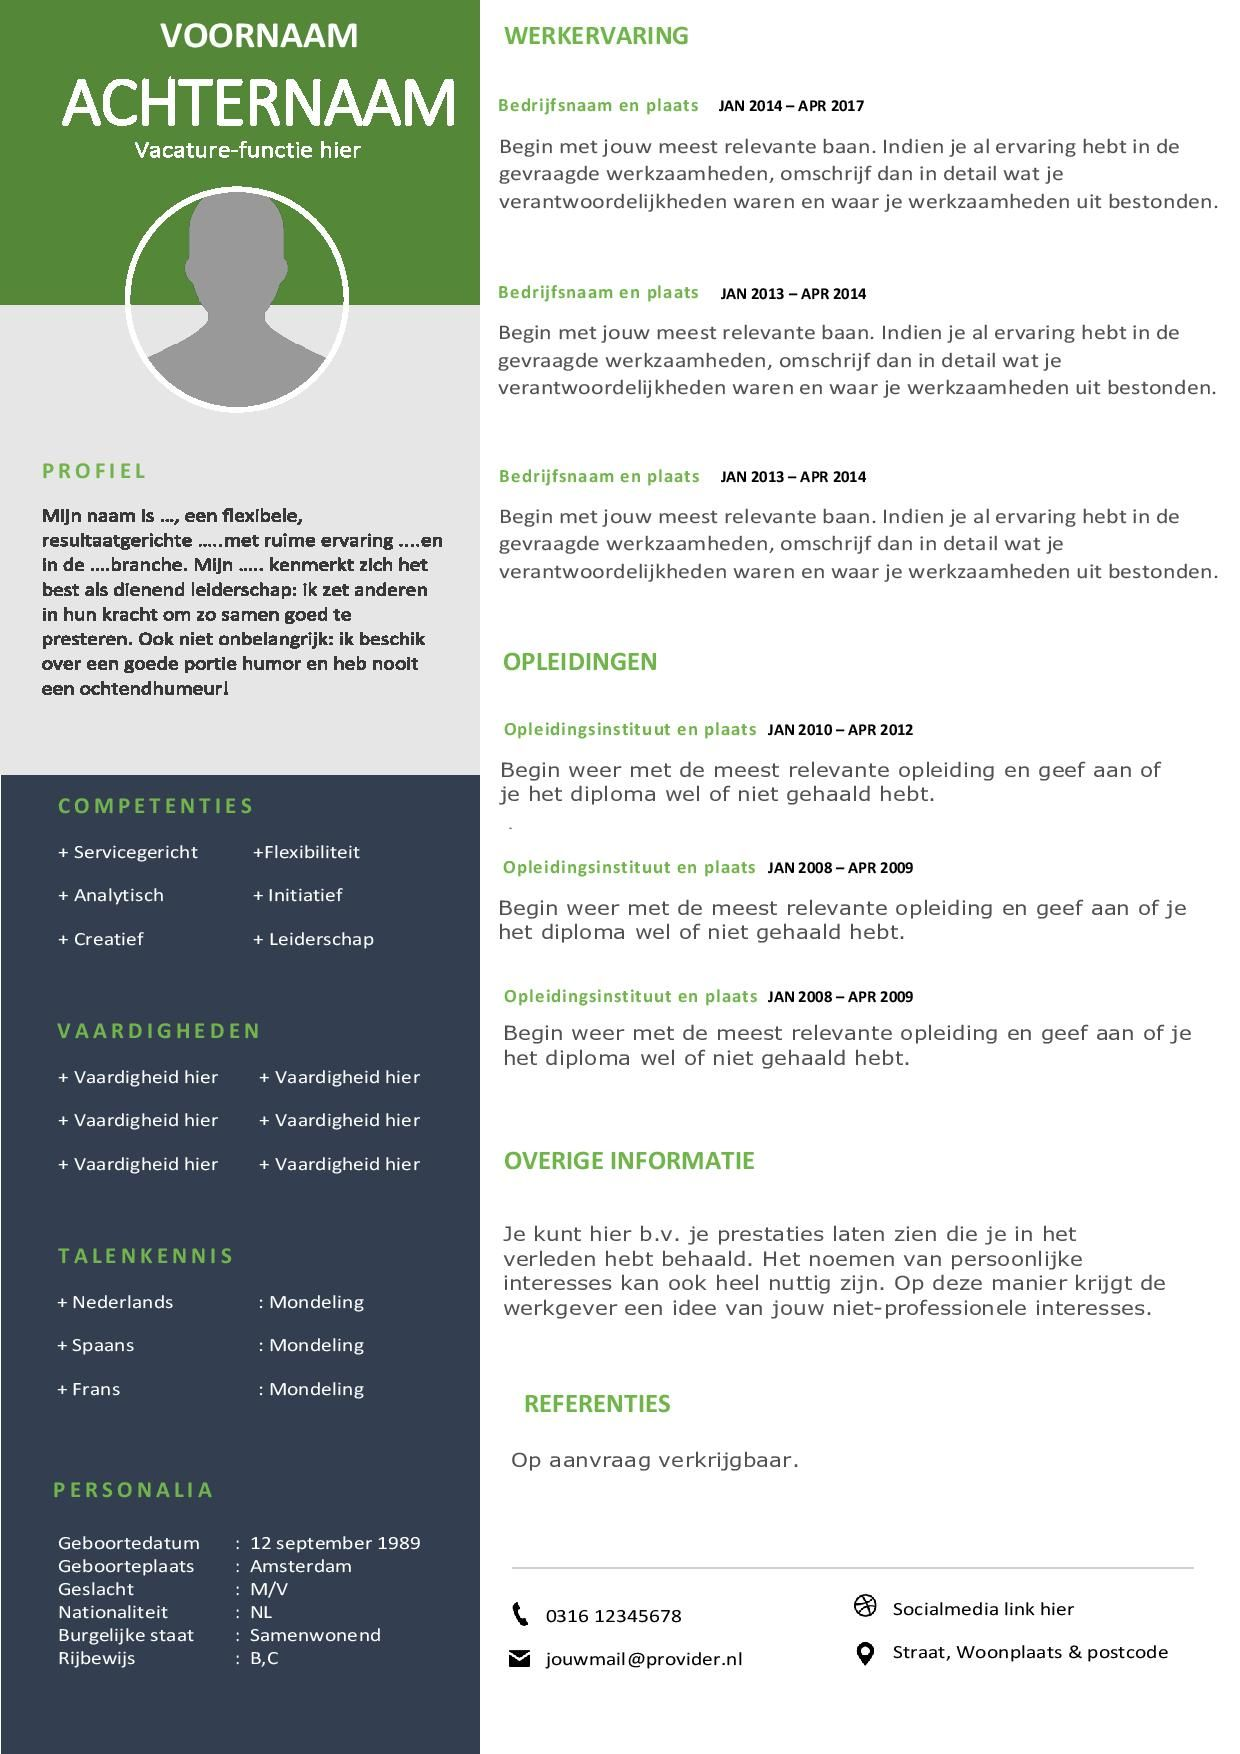 val op met dit modern cv sjabloon sjabloon, sjablonen warehouse supervisor job description resume sample docx free download nursing assistant with no experience